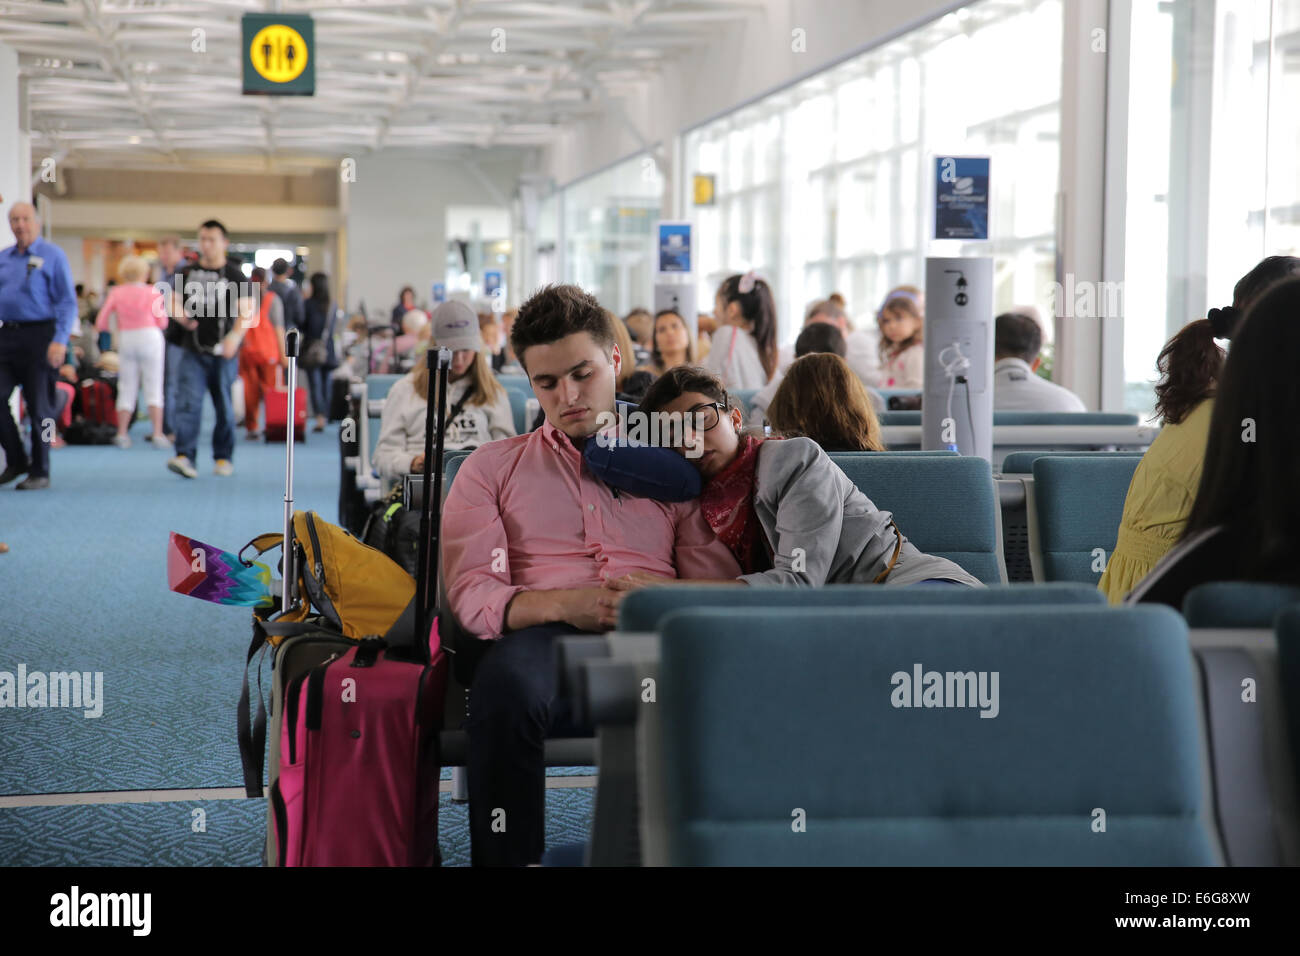 tired exhausted passenger lapping inside airport boarding gate area - Stock Image